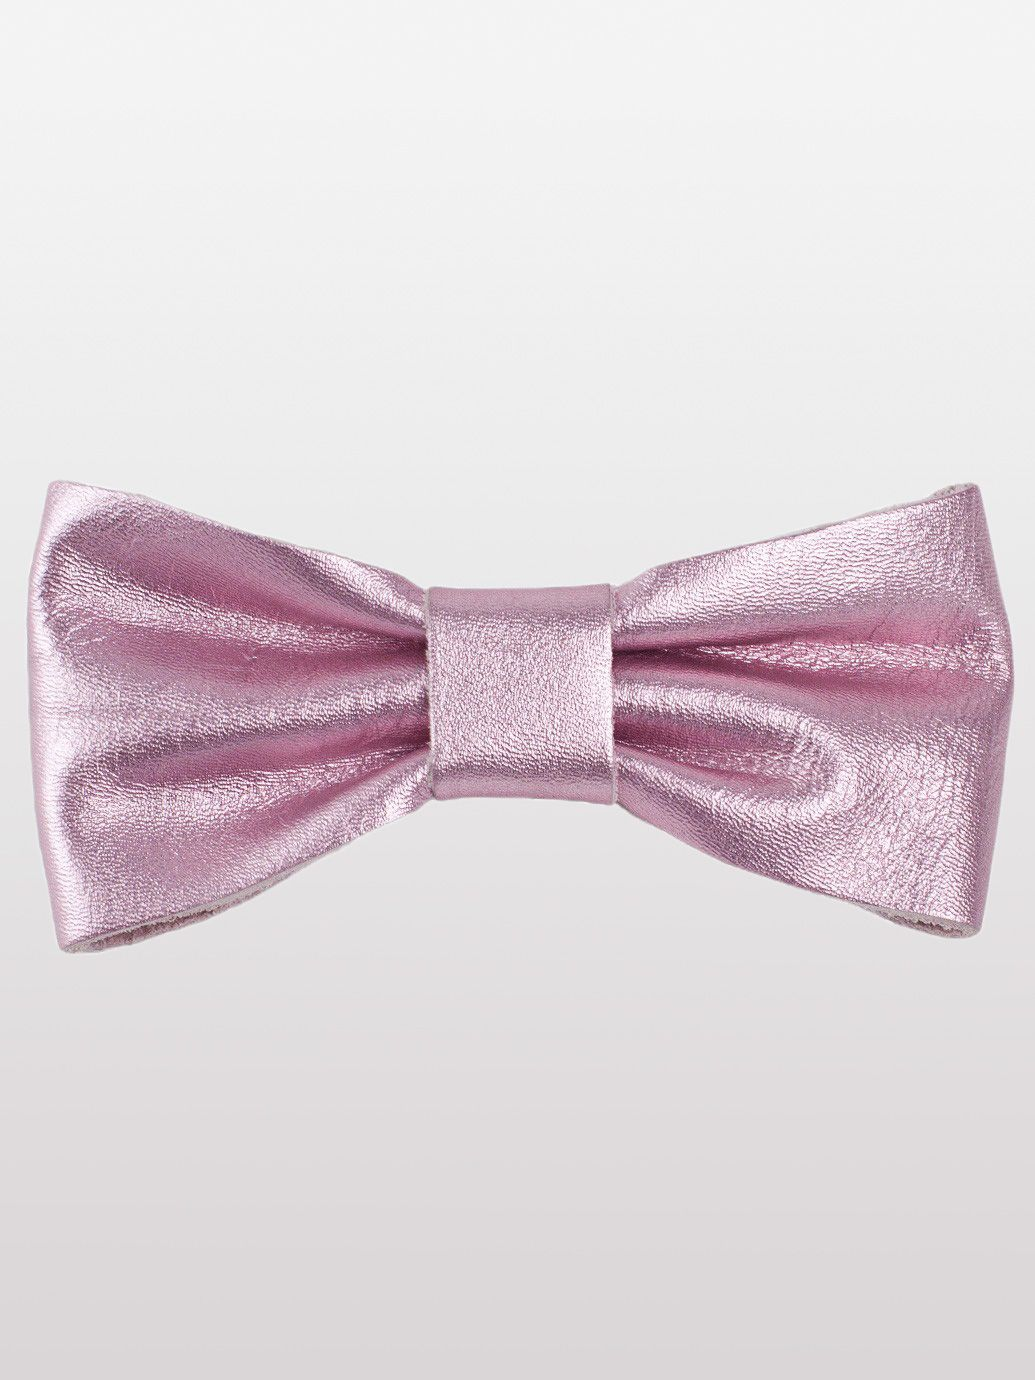 Leather Bow Clip in Metallic Pink by #AmericanApparel.  #leather #pink #metallic #accessories #hairbows